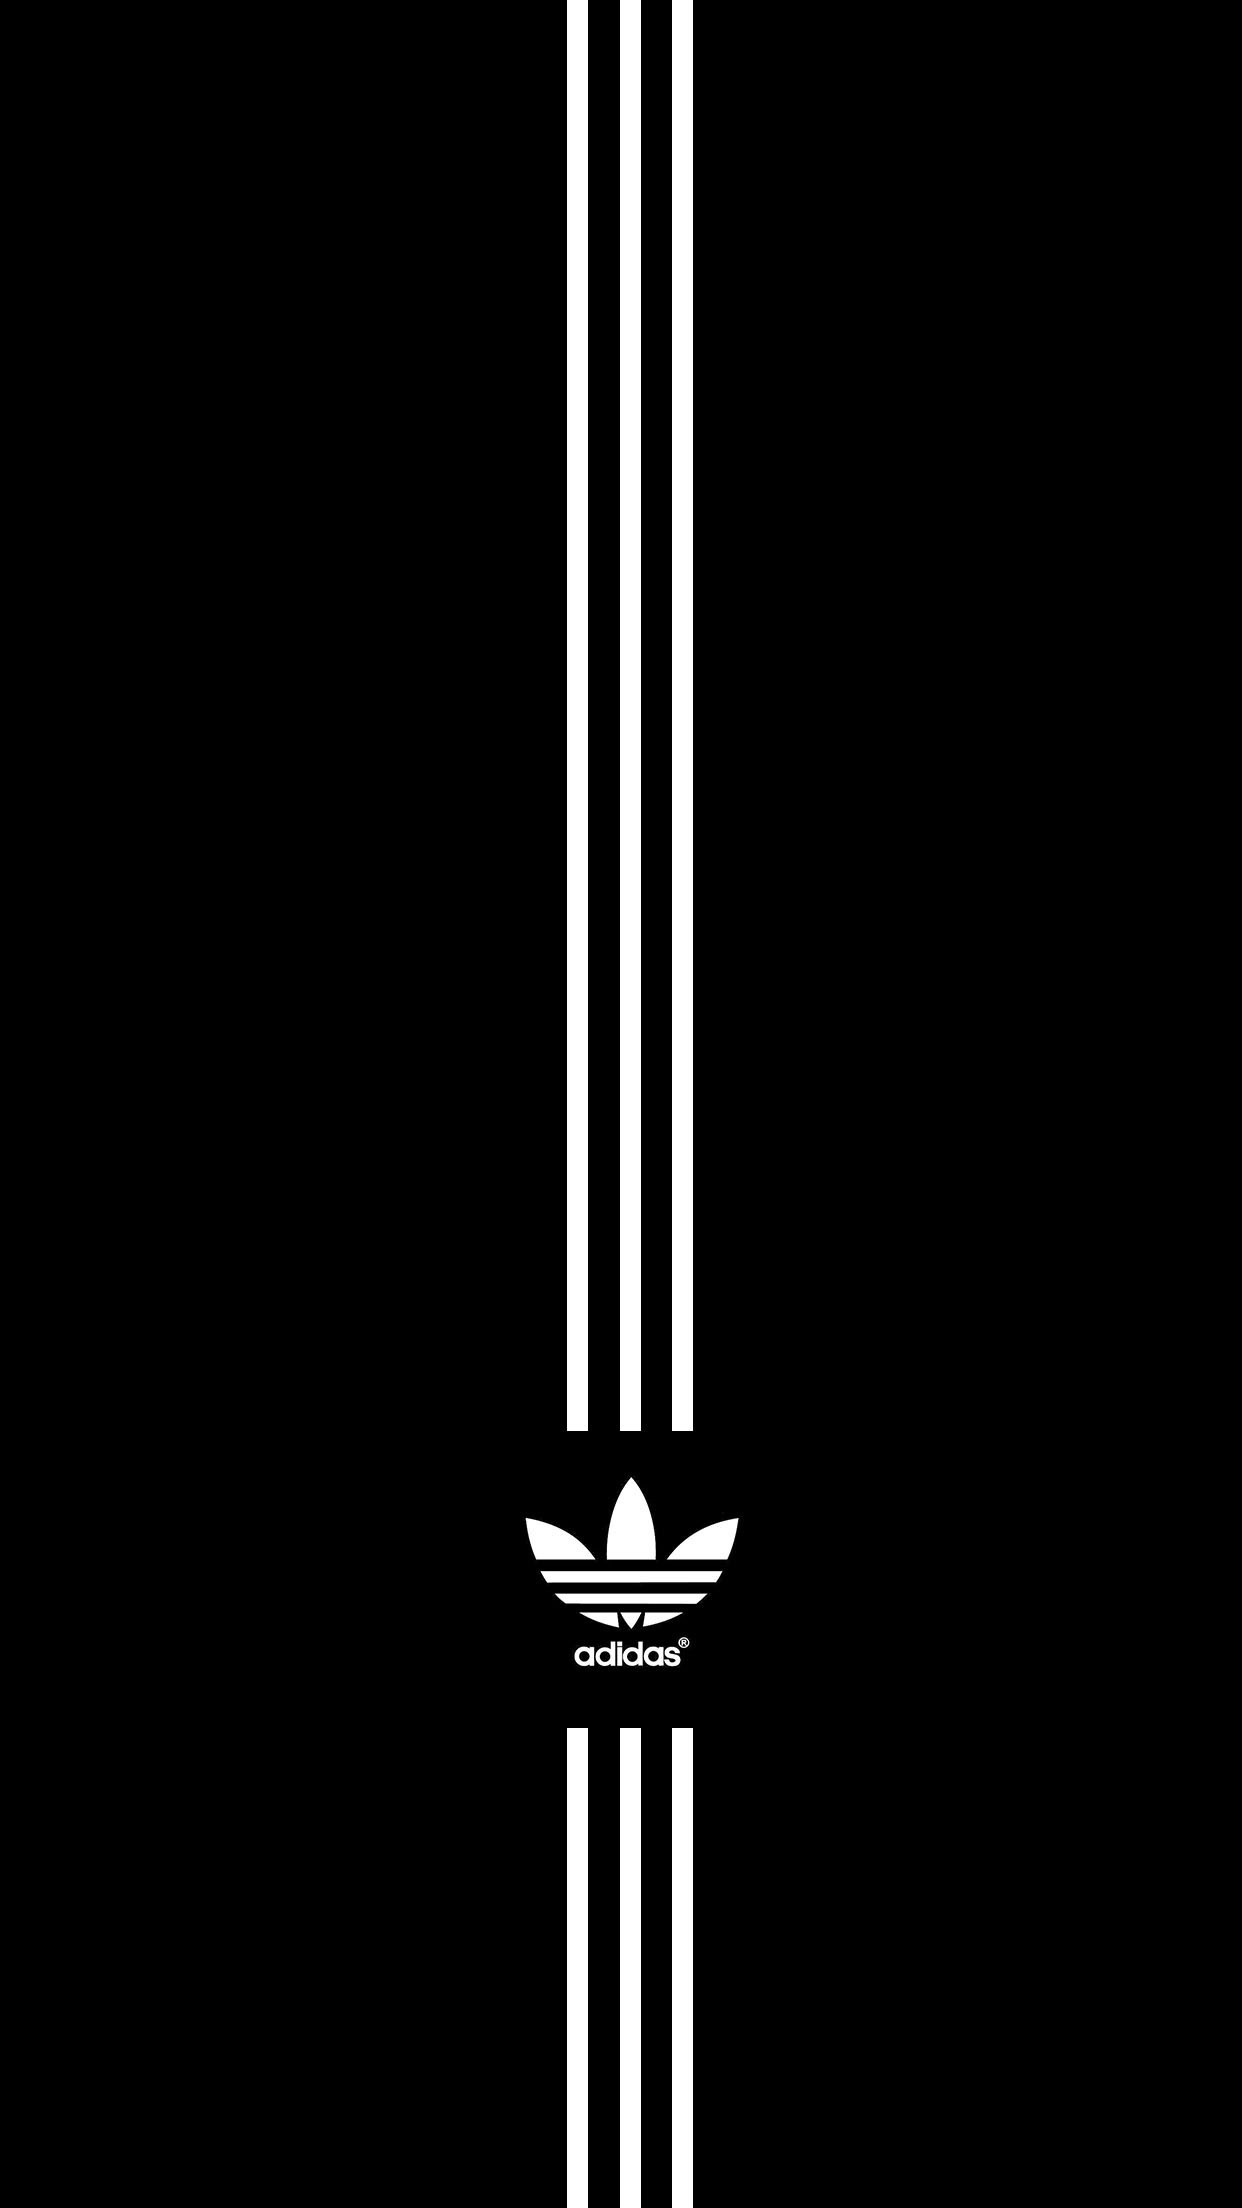 Adidas Originals Logo Wallpaper 57 Images